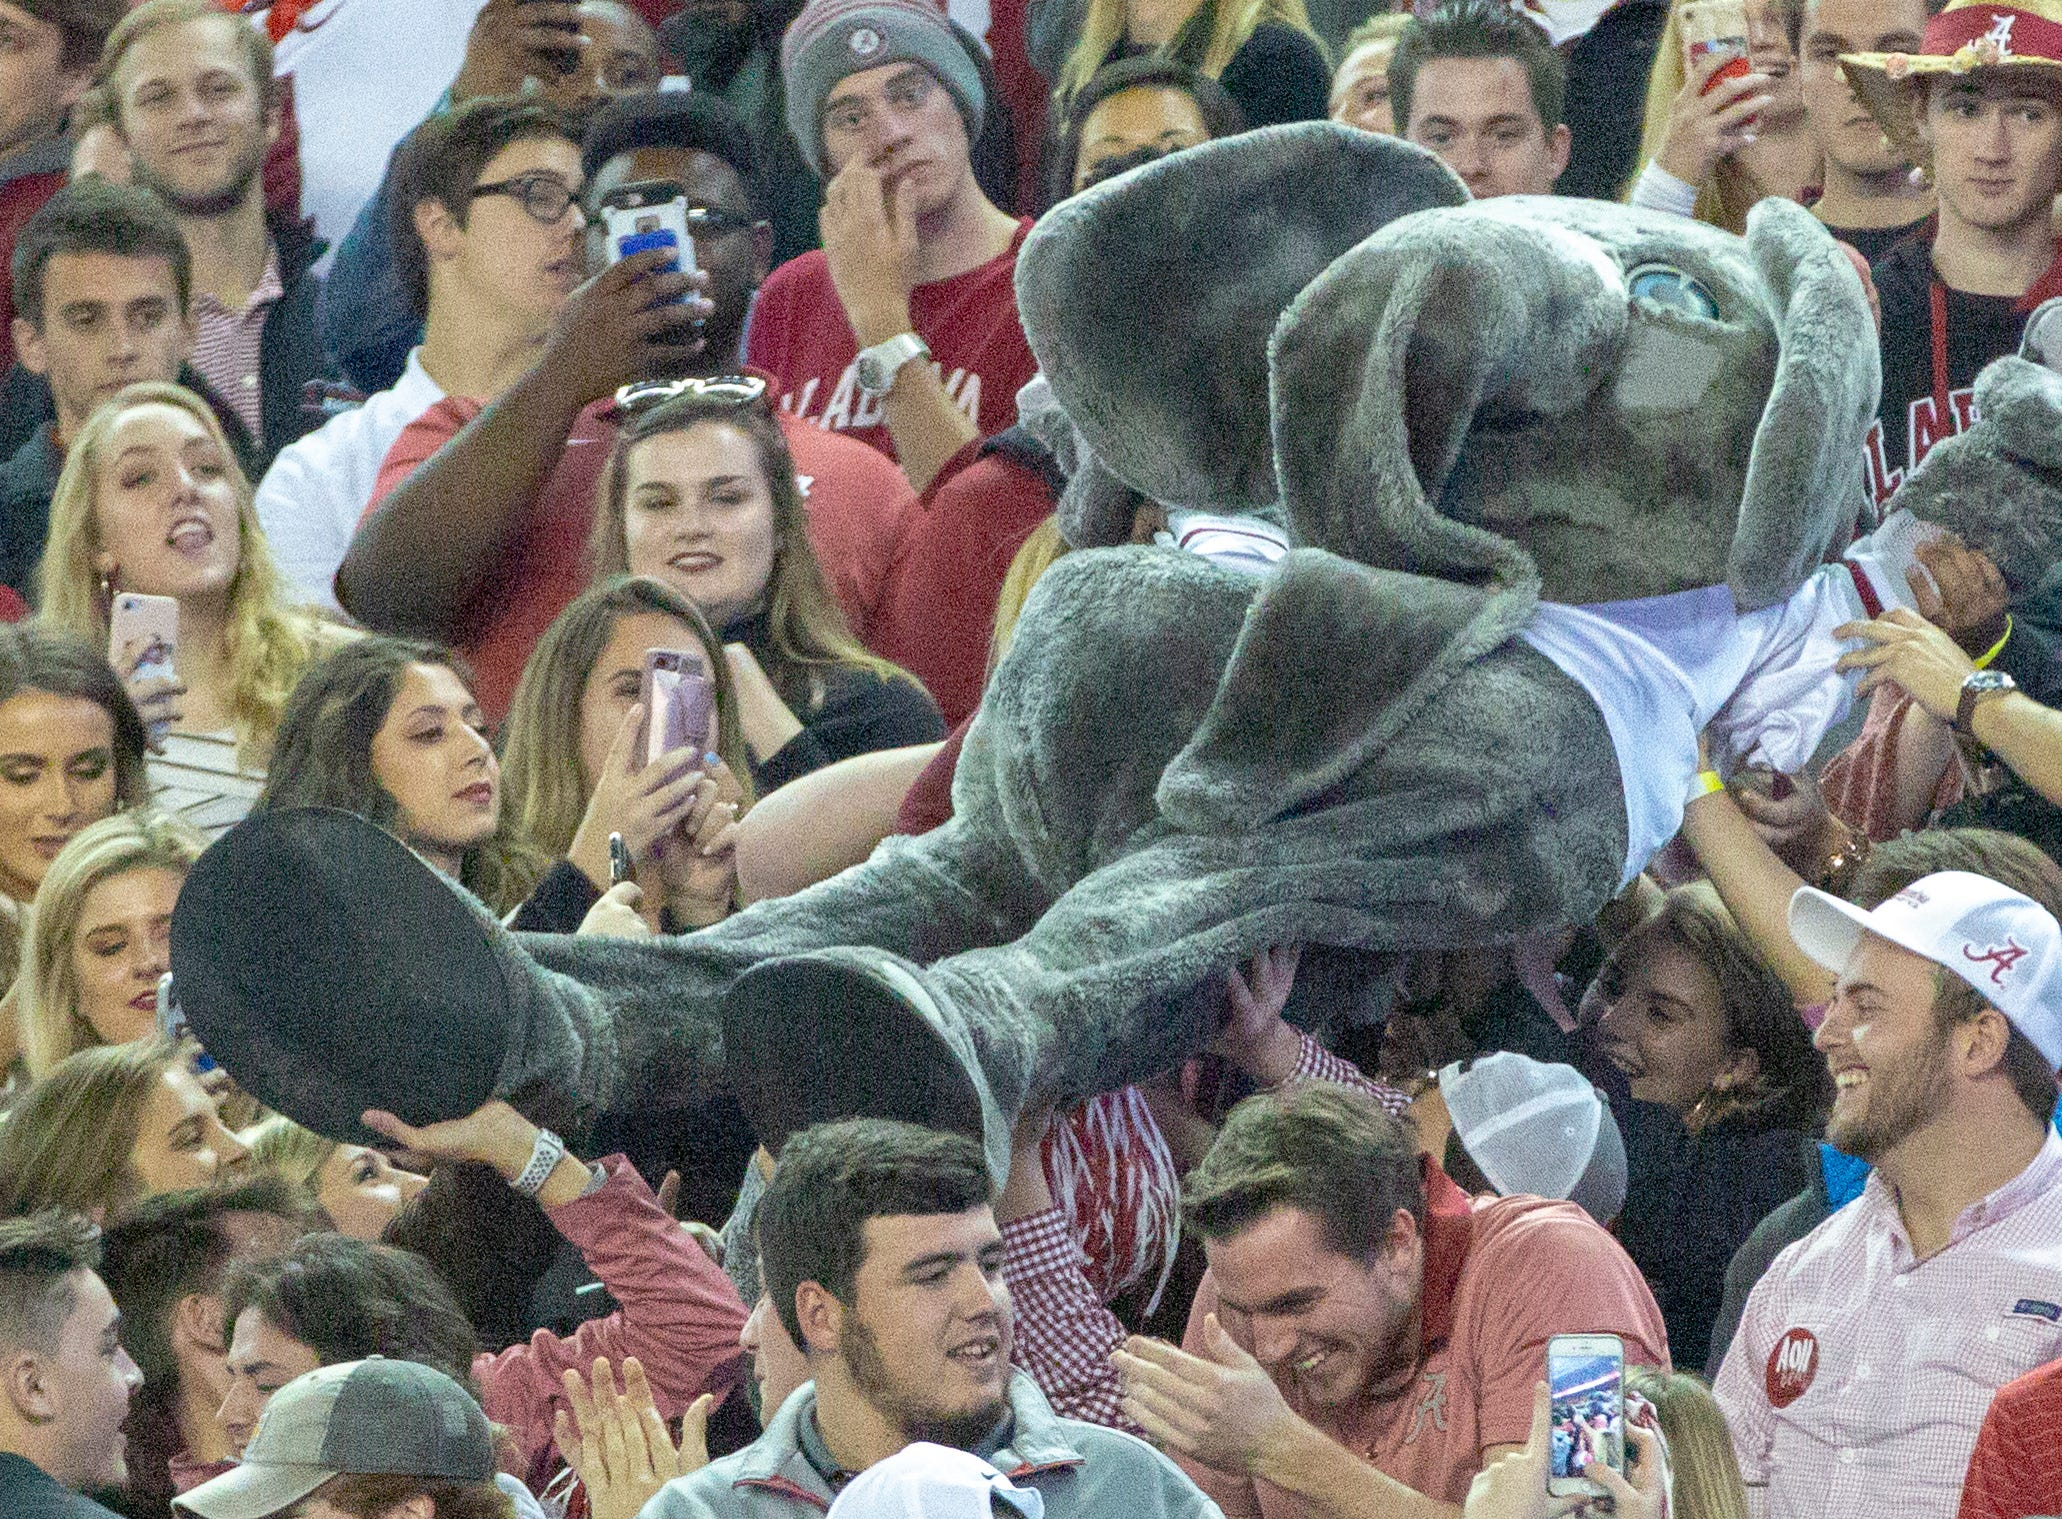 Big Al, the Crimson Tide's pachyderm mascot, crowd surfs in the student section.